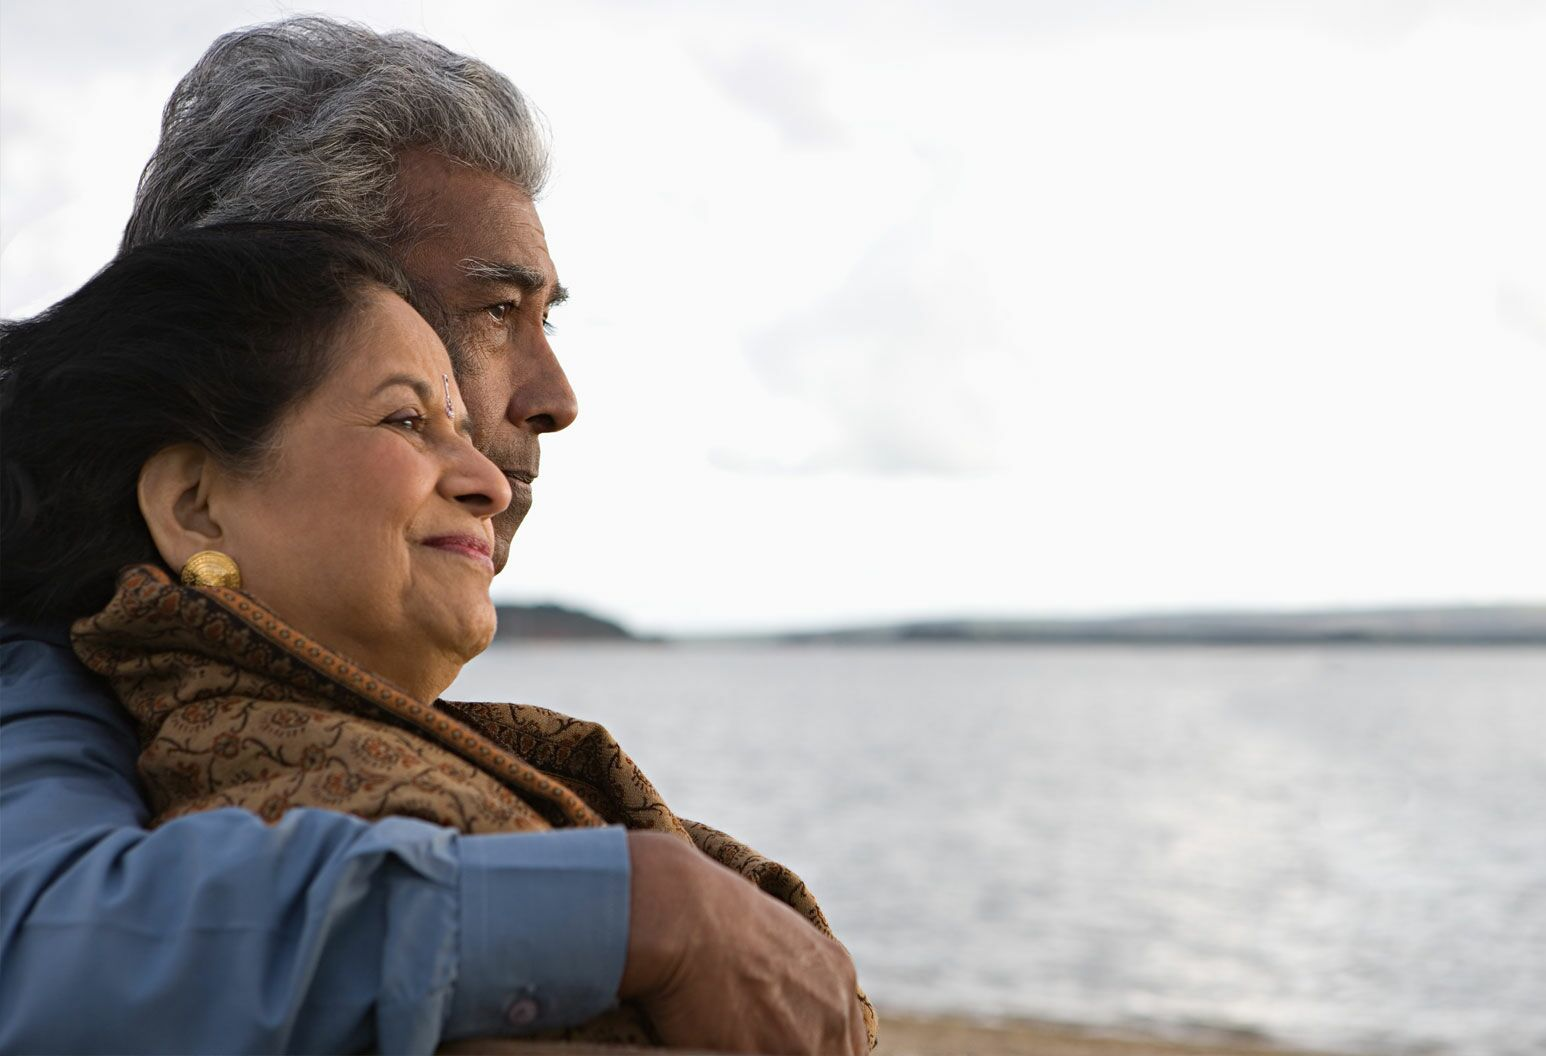 An elderly man and woman embrace with the sea in the background of the shot.